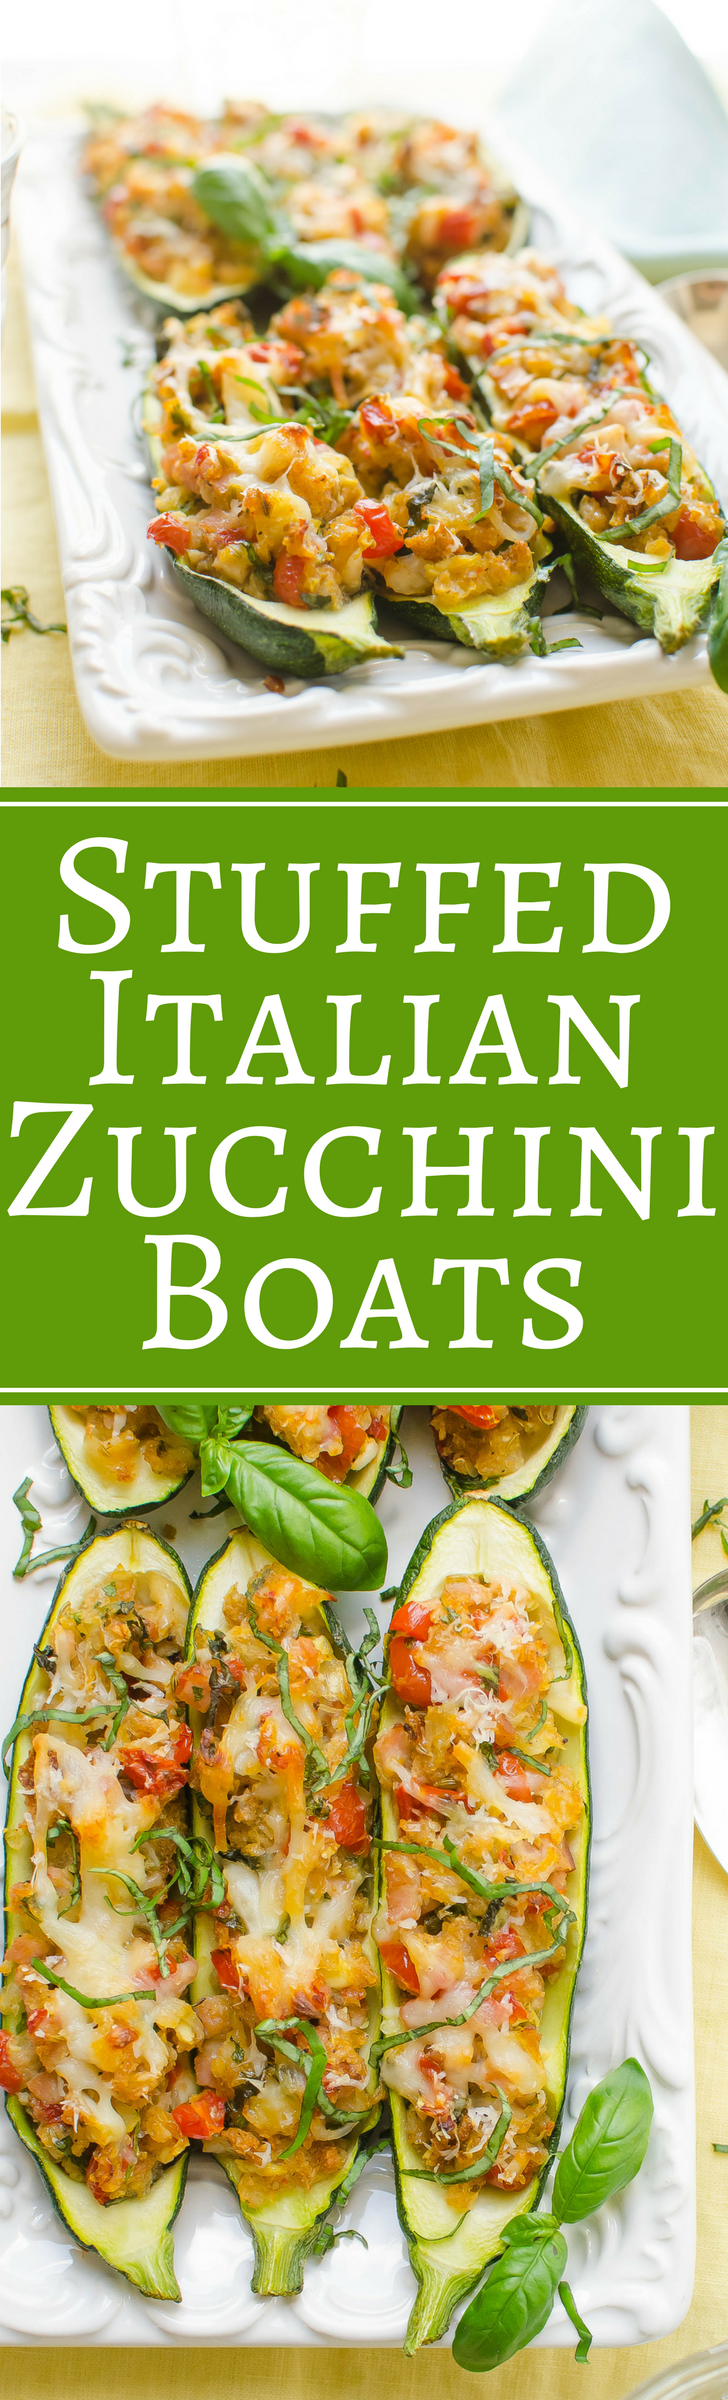 An easy recipe for Stuffed Zucchini Boats is a delicious side dish perfect for entertaining and holidays!